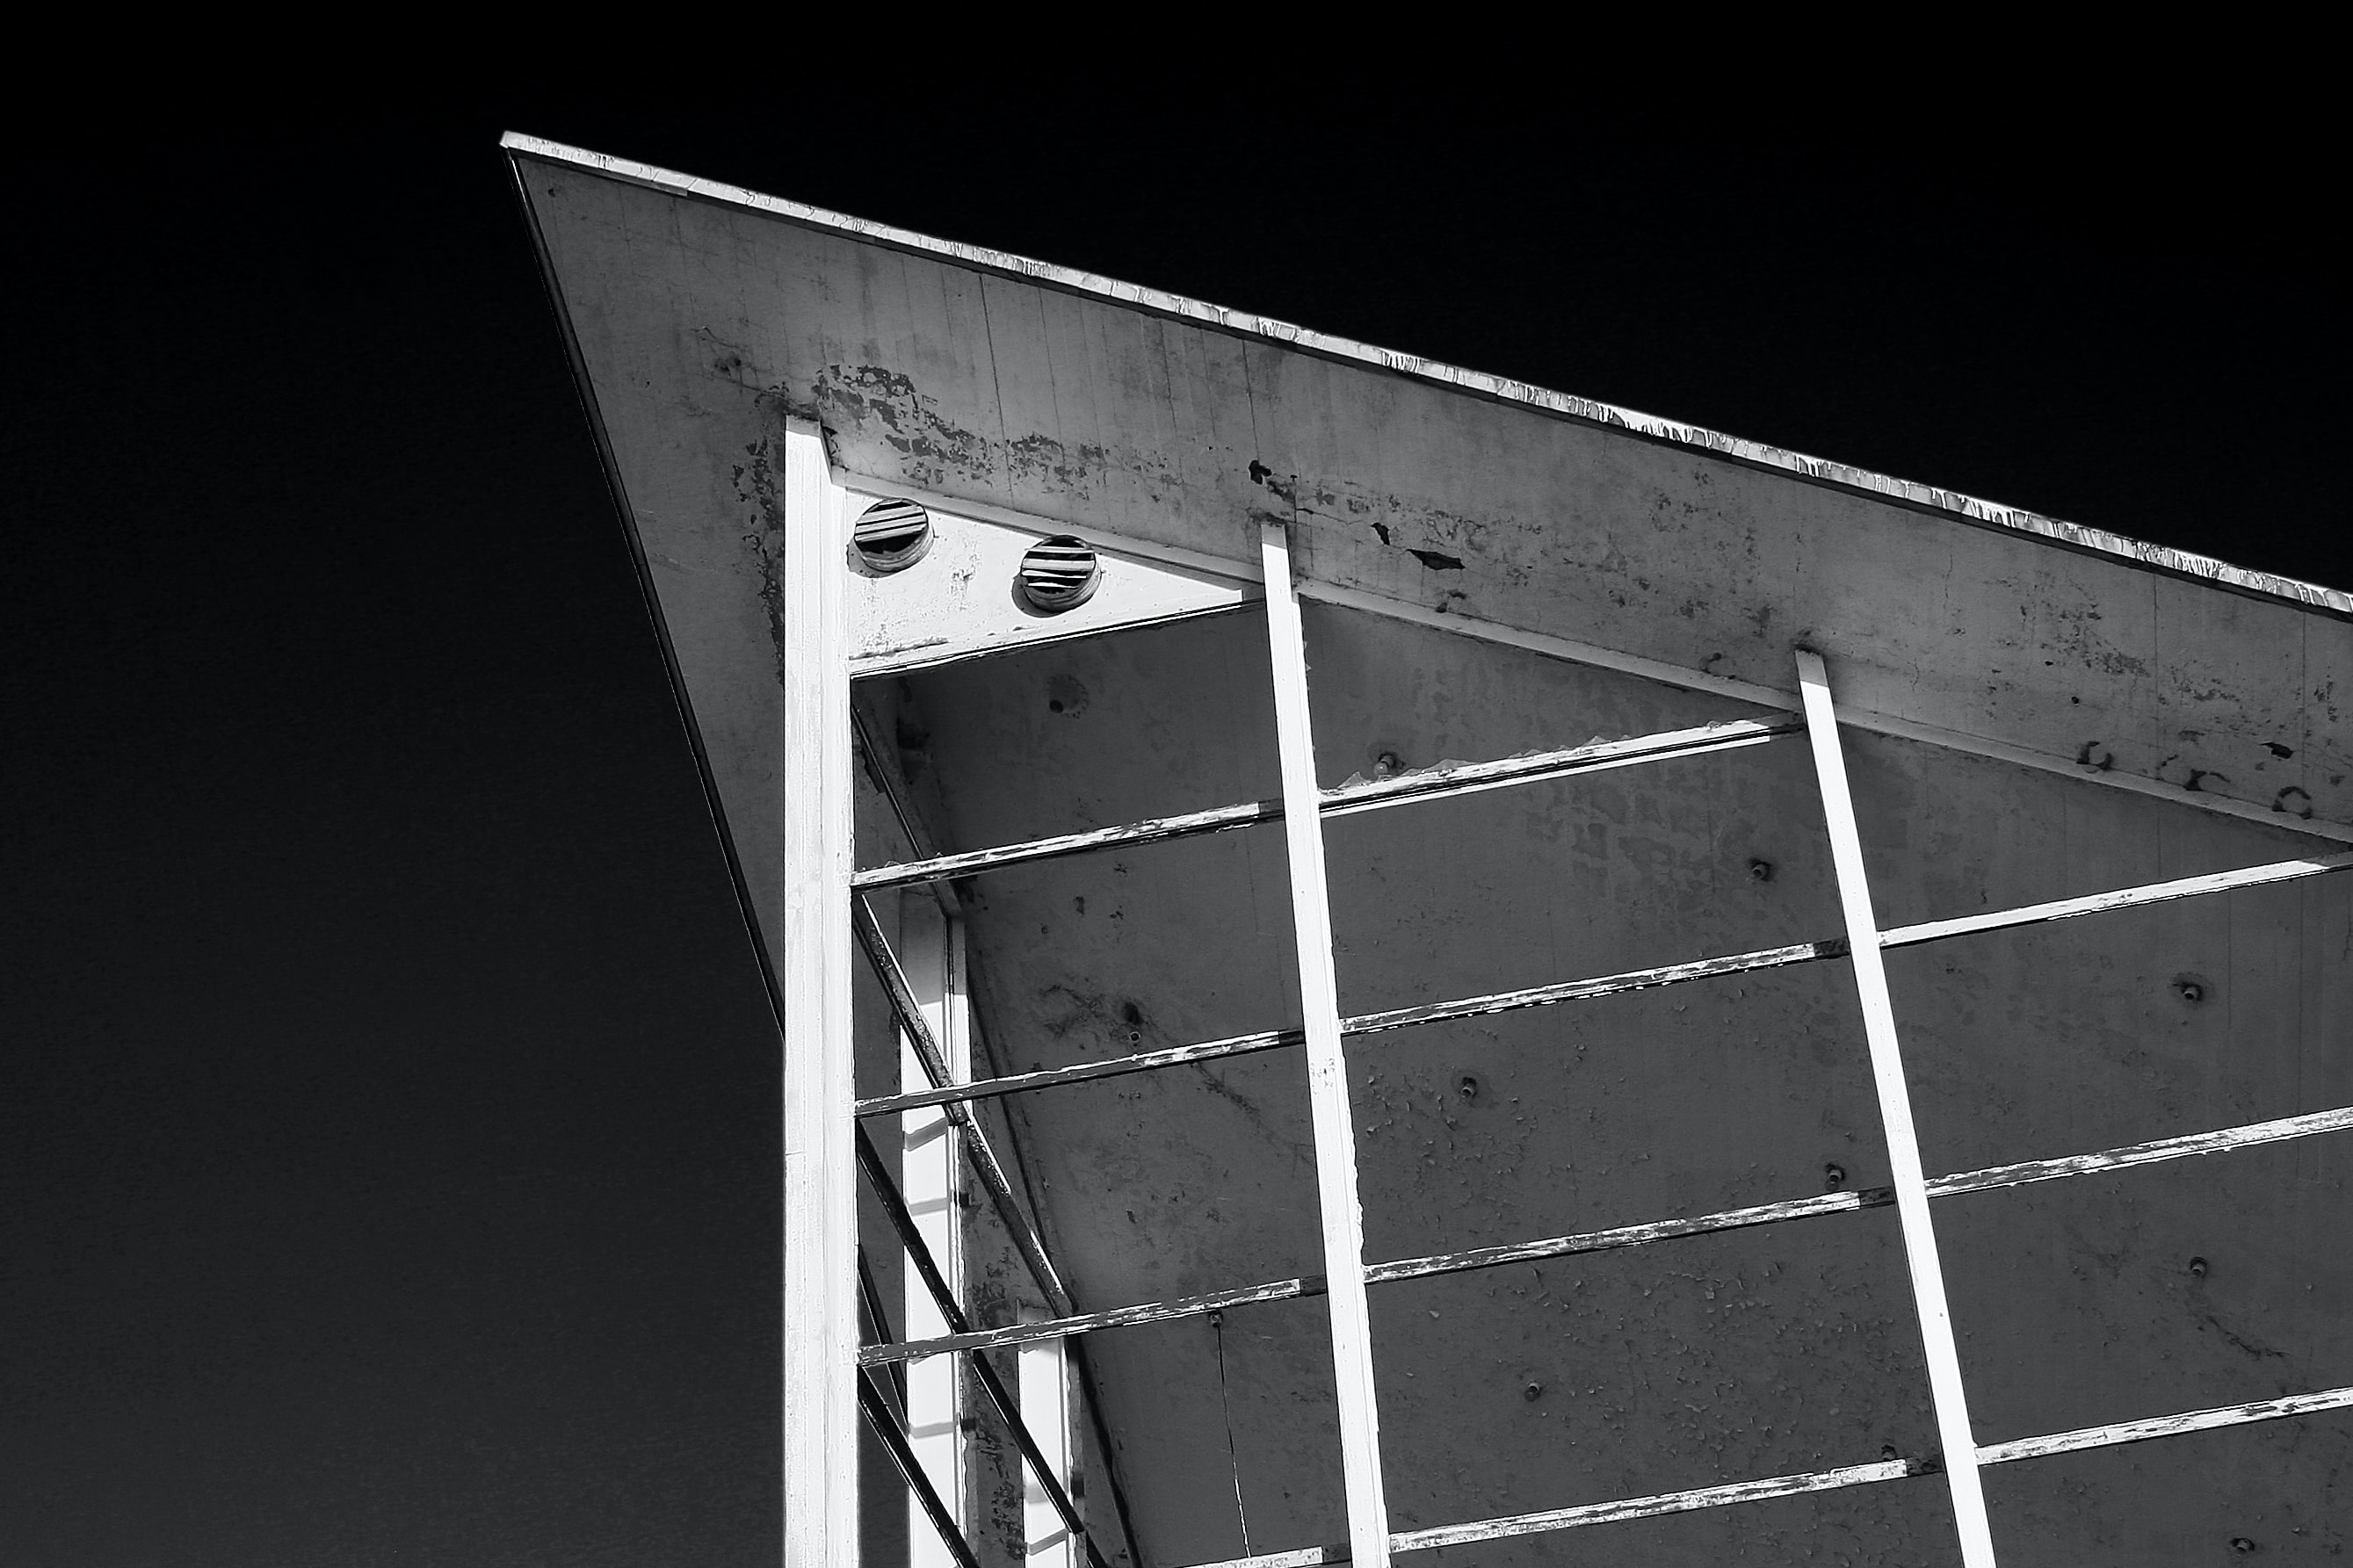 grayscale photography of metal arch roofg